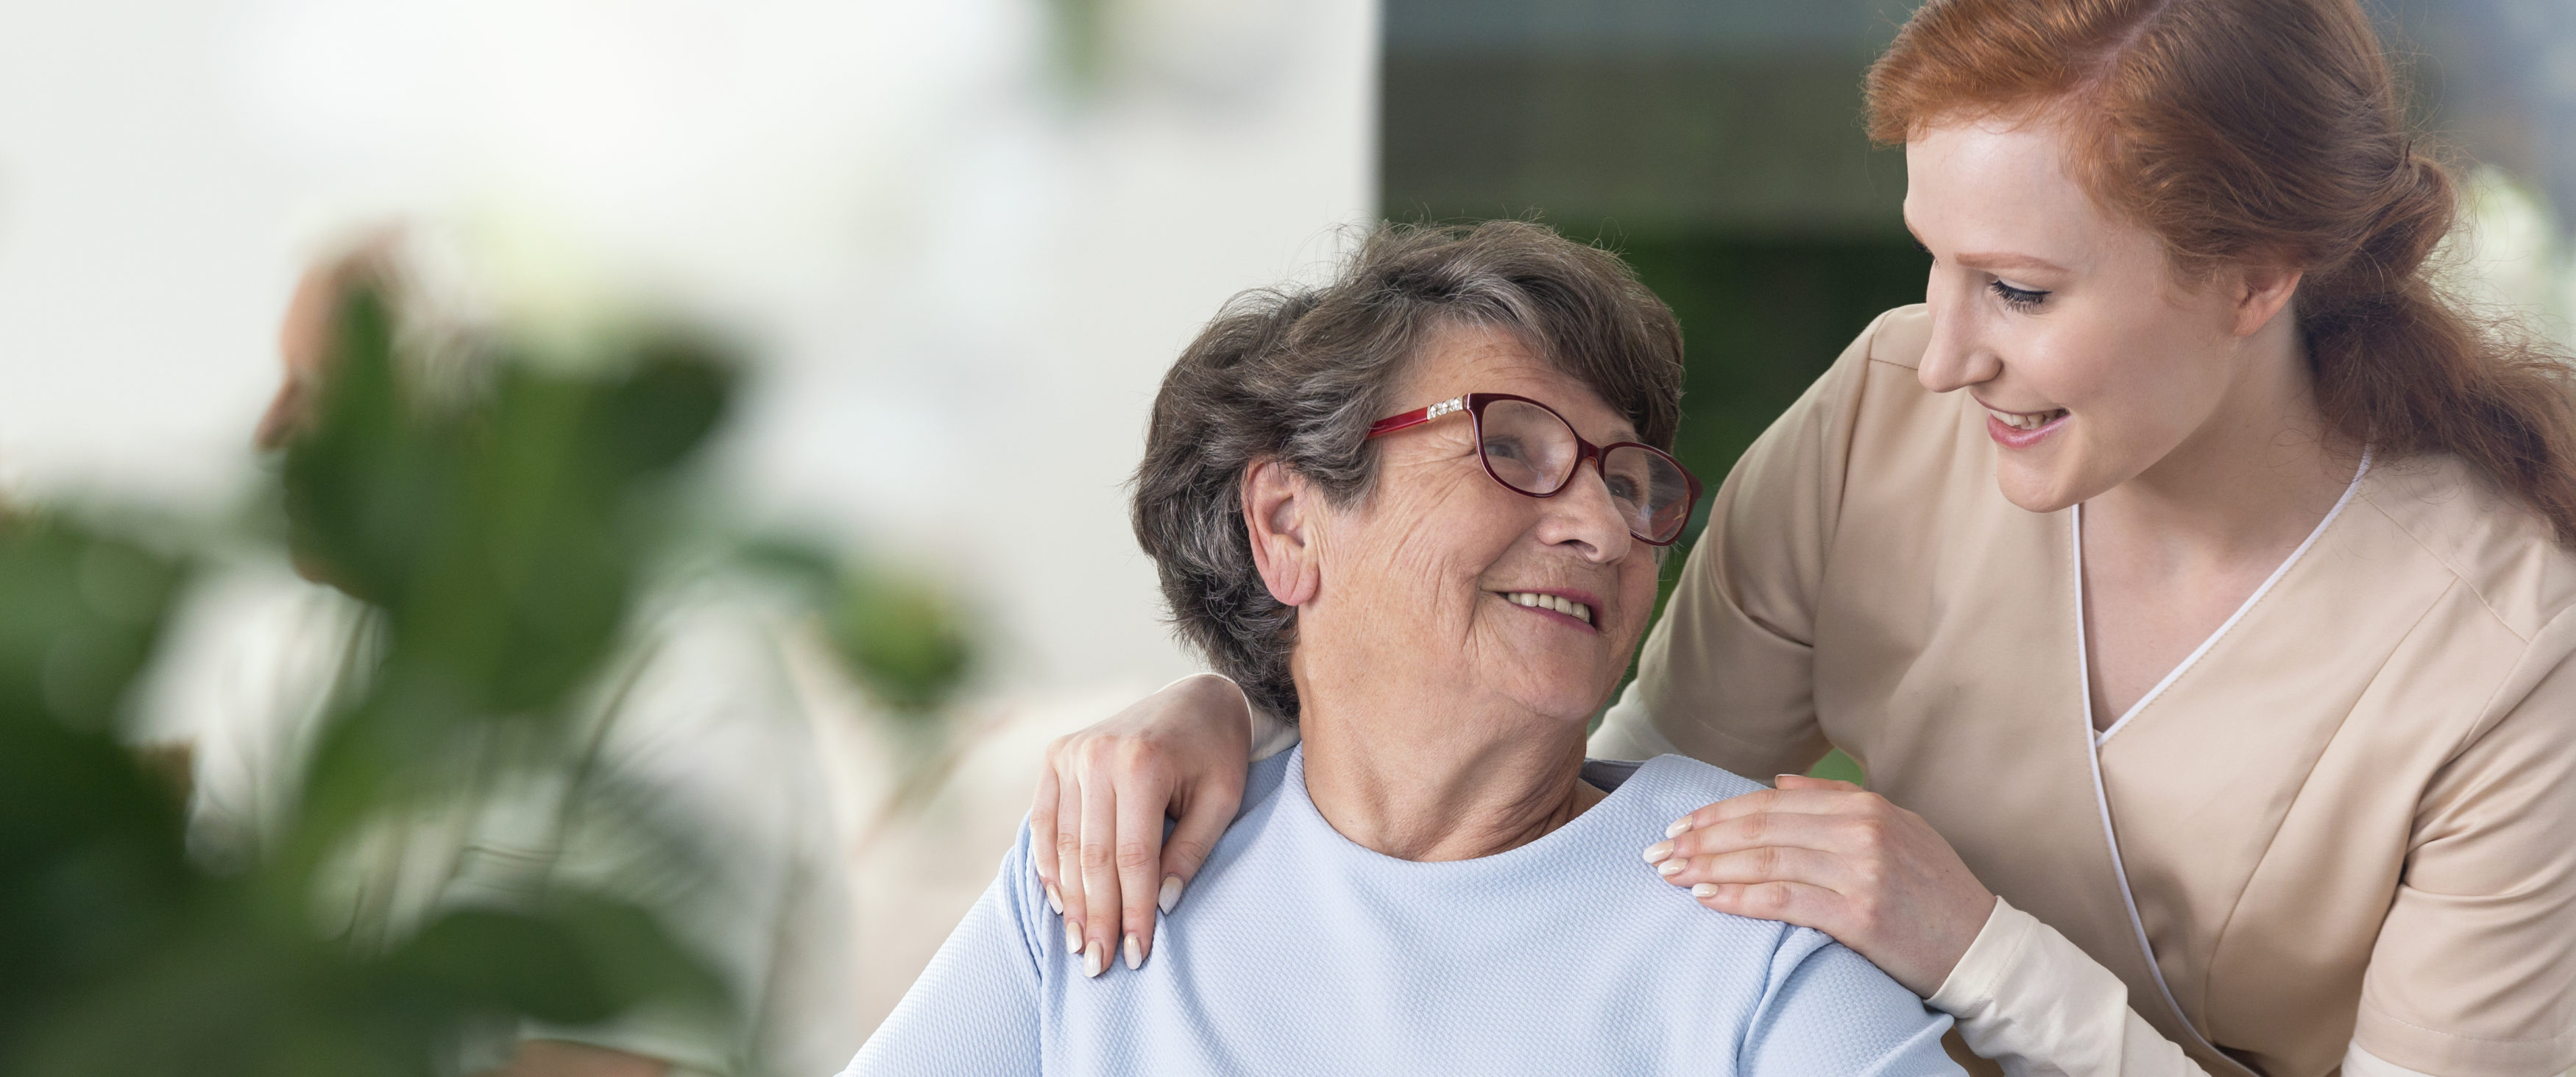 Close-up of a tender caregiver with her hands on the shoulders of a senior woman inside her home.